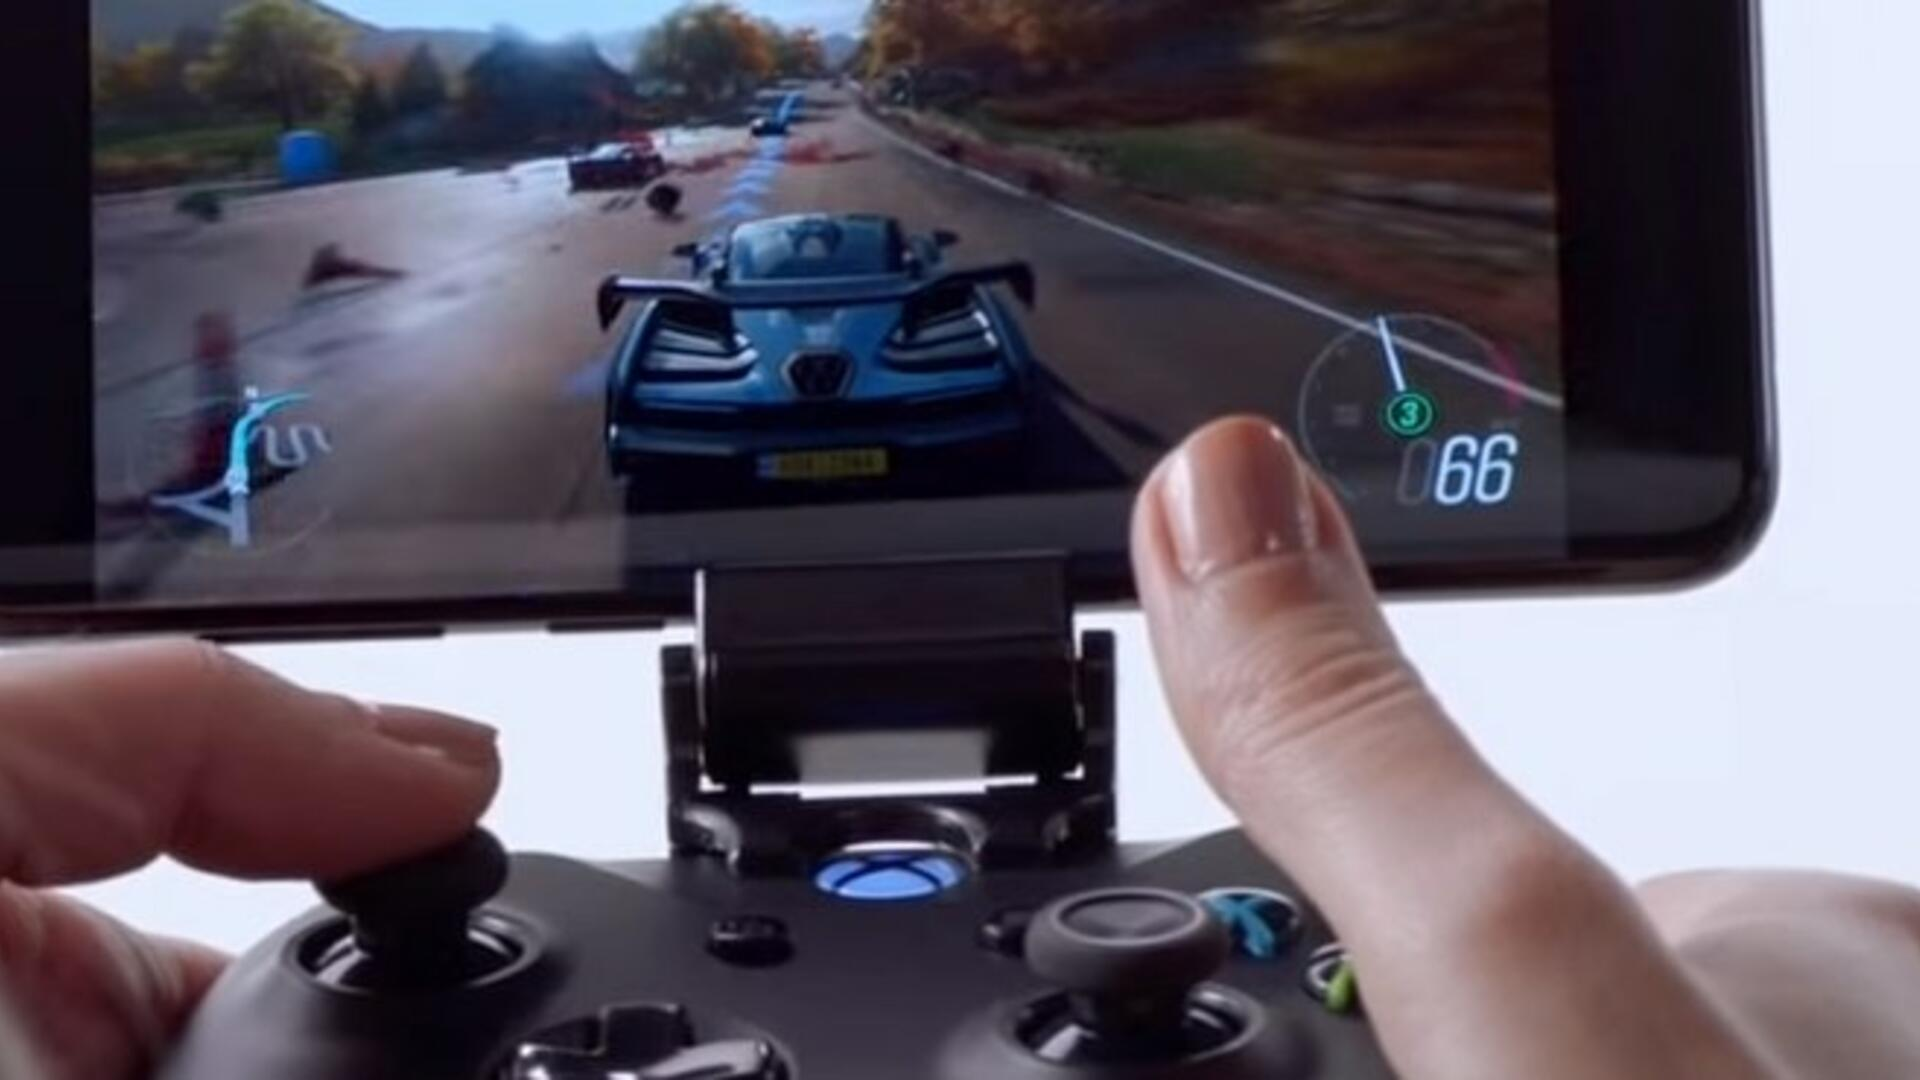 Microsoft's Game Streaming Tech, Project xCloud, Will Deploy Xbox Games Across All Devices, Public Test in 2019